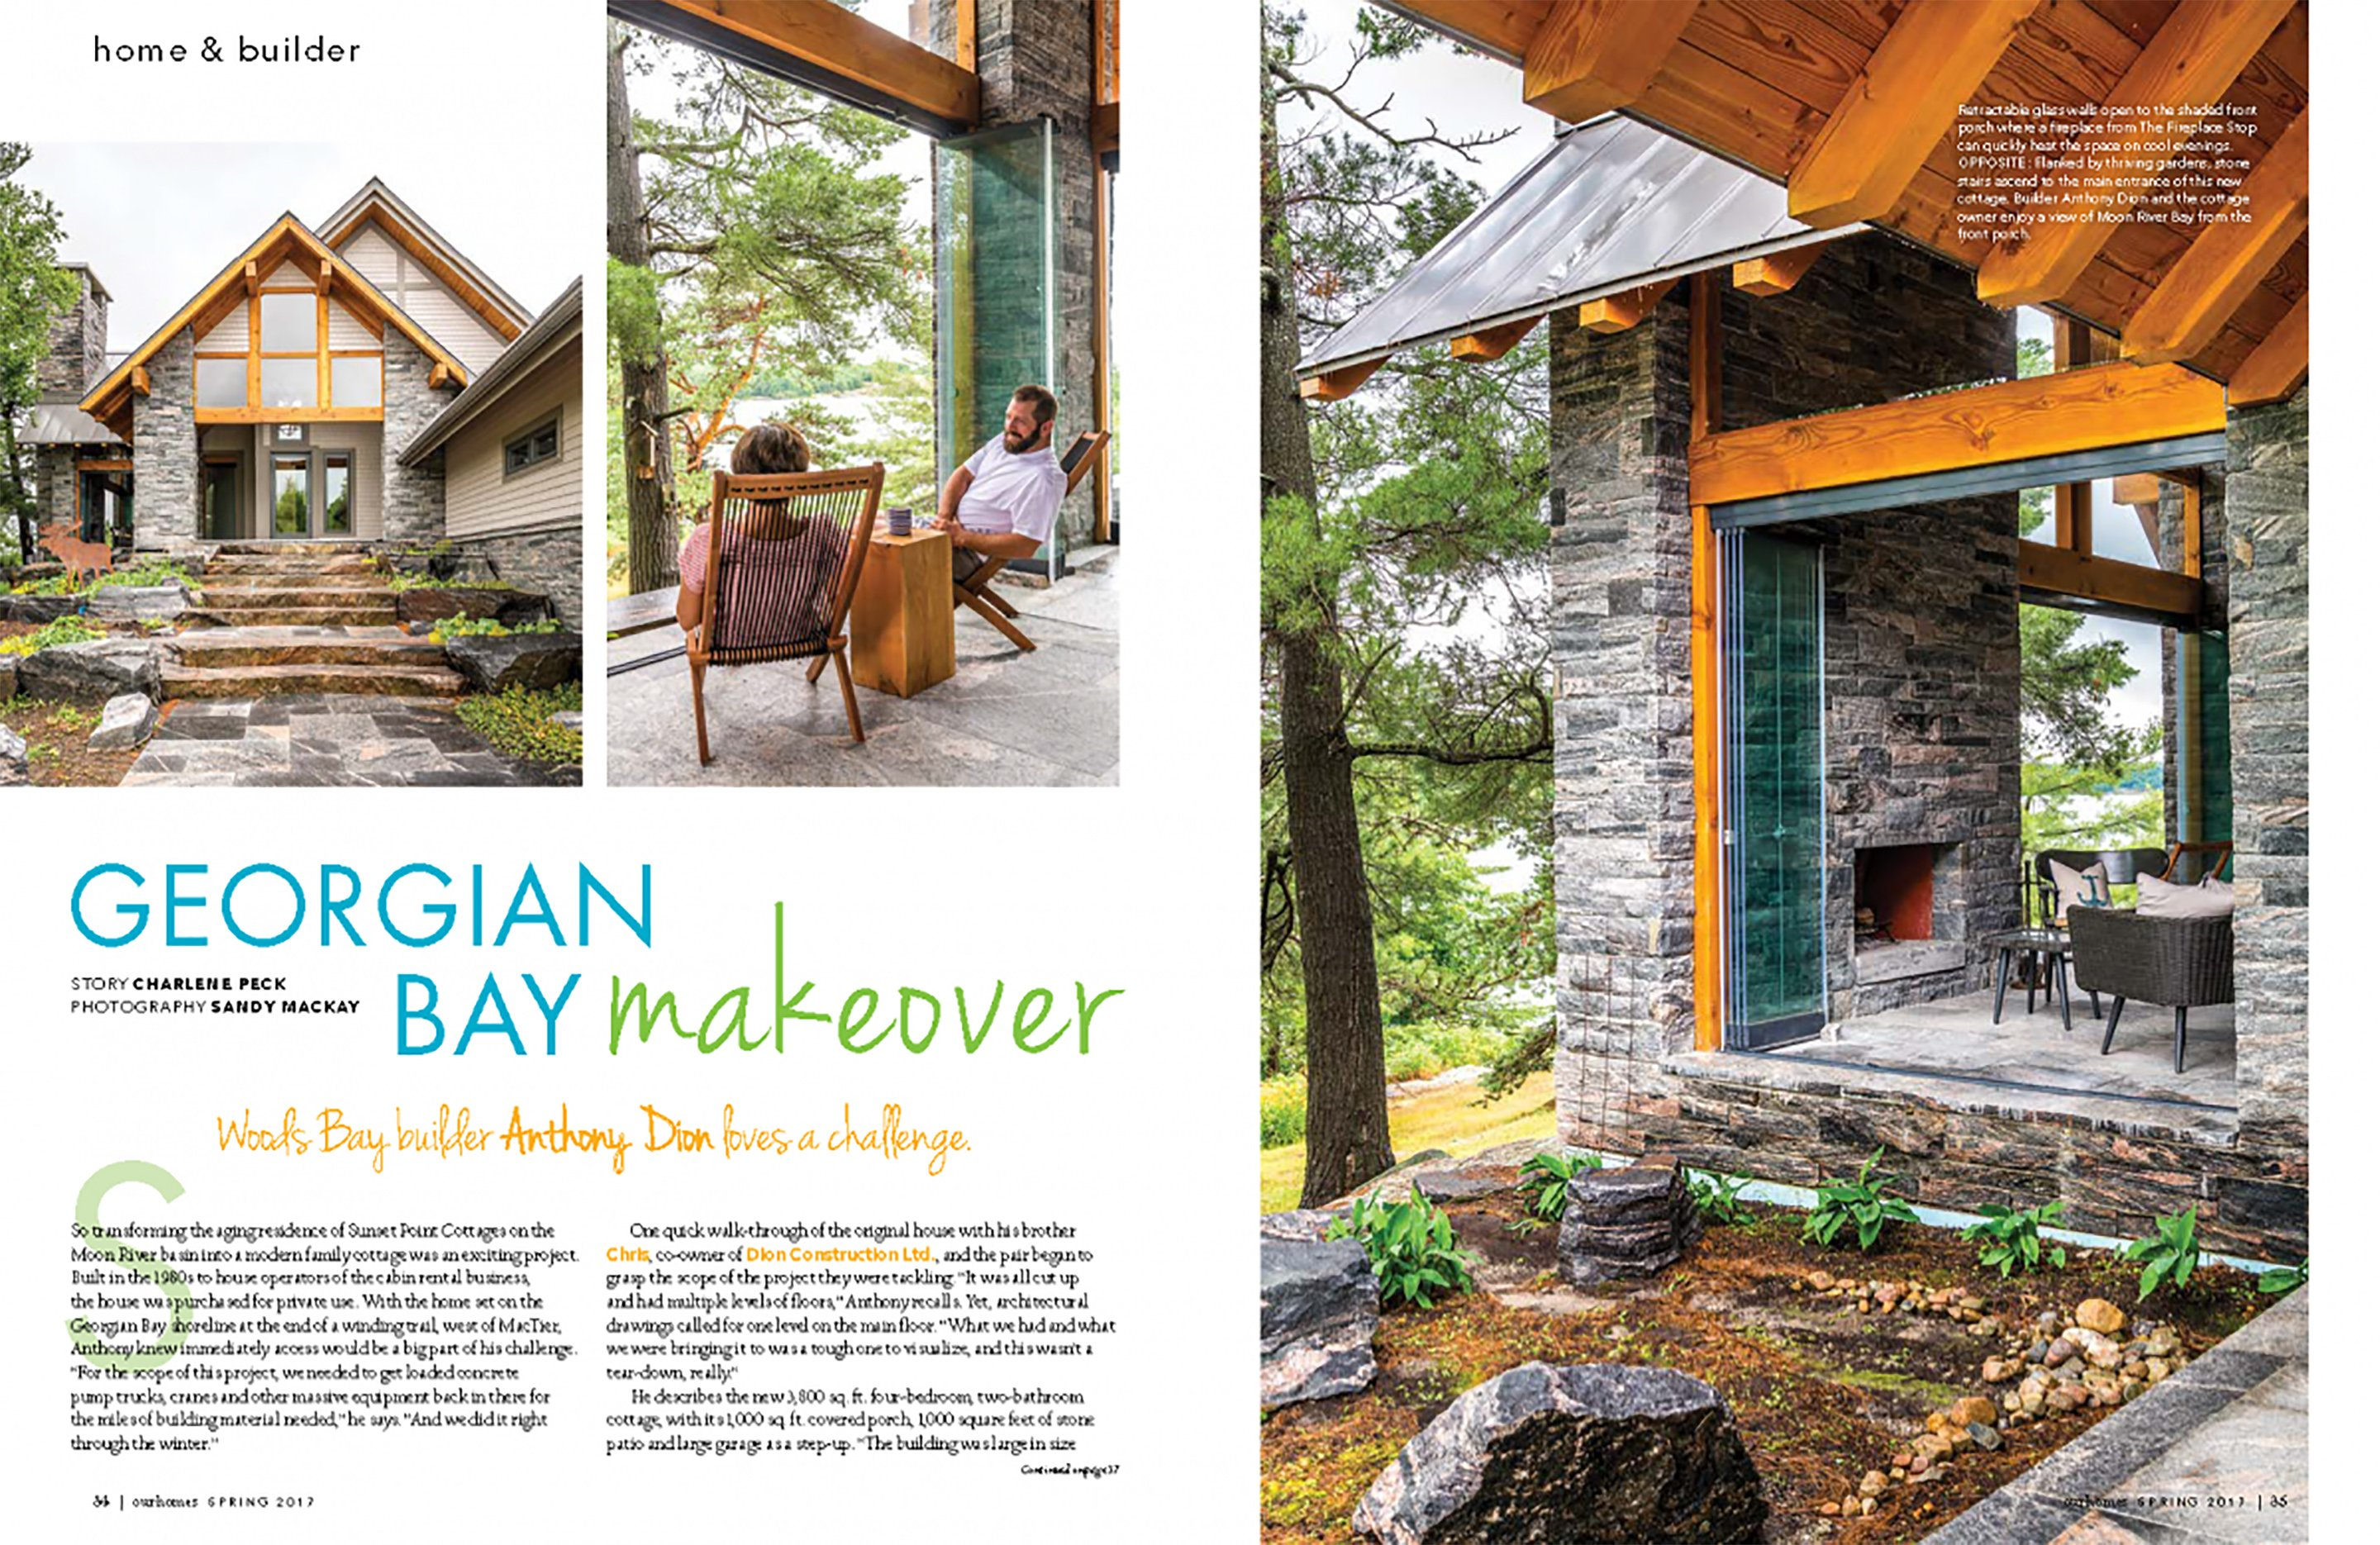 Georgian Bay Makeover, Our Homes magazine, retractable glass walls, Lumon